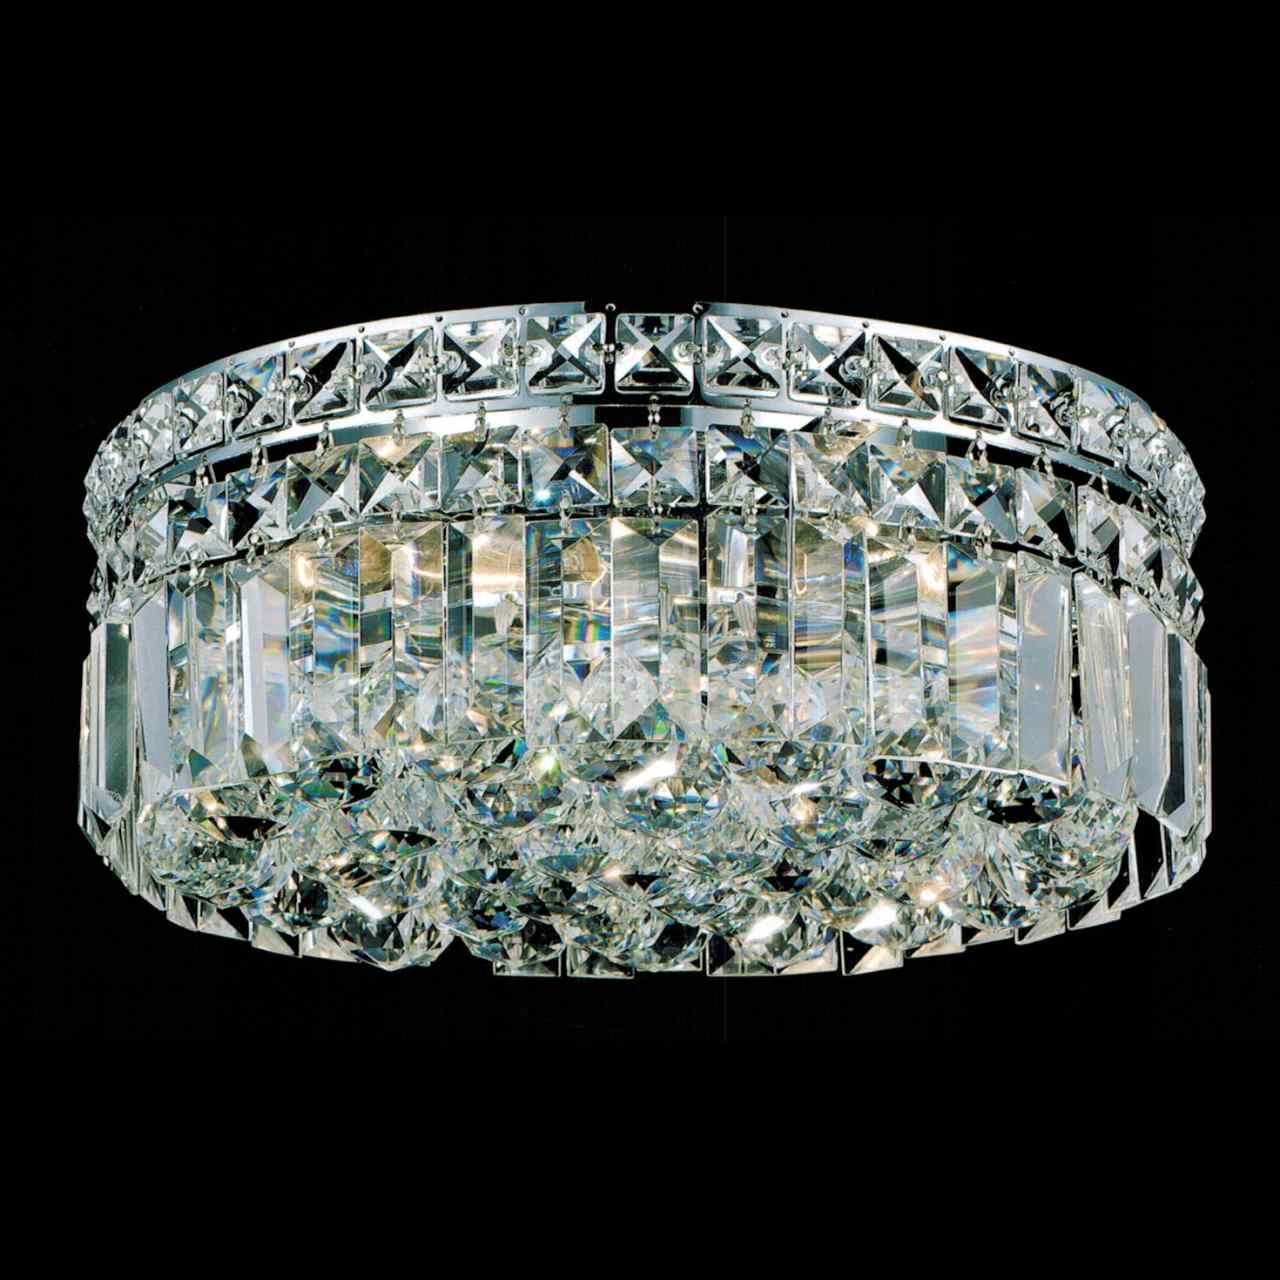 Brizzo Lighting Stores 12 Bossolo Transitional Crystal Round Regarding Flush Chandelier (View 11 of 15)